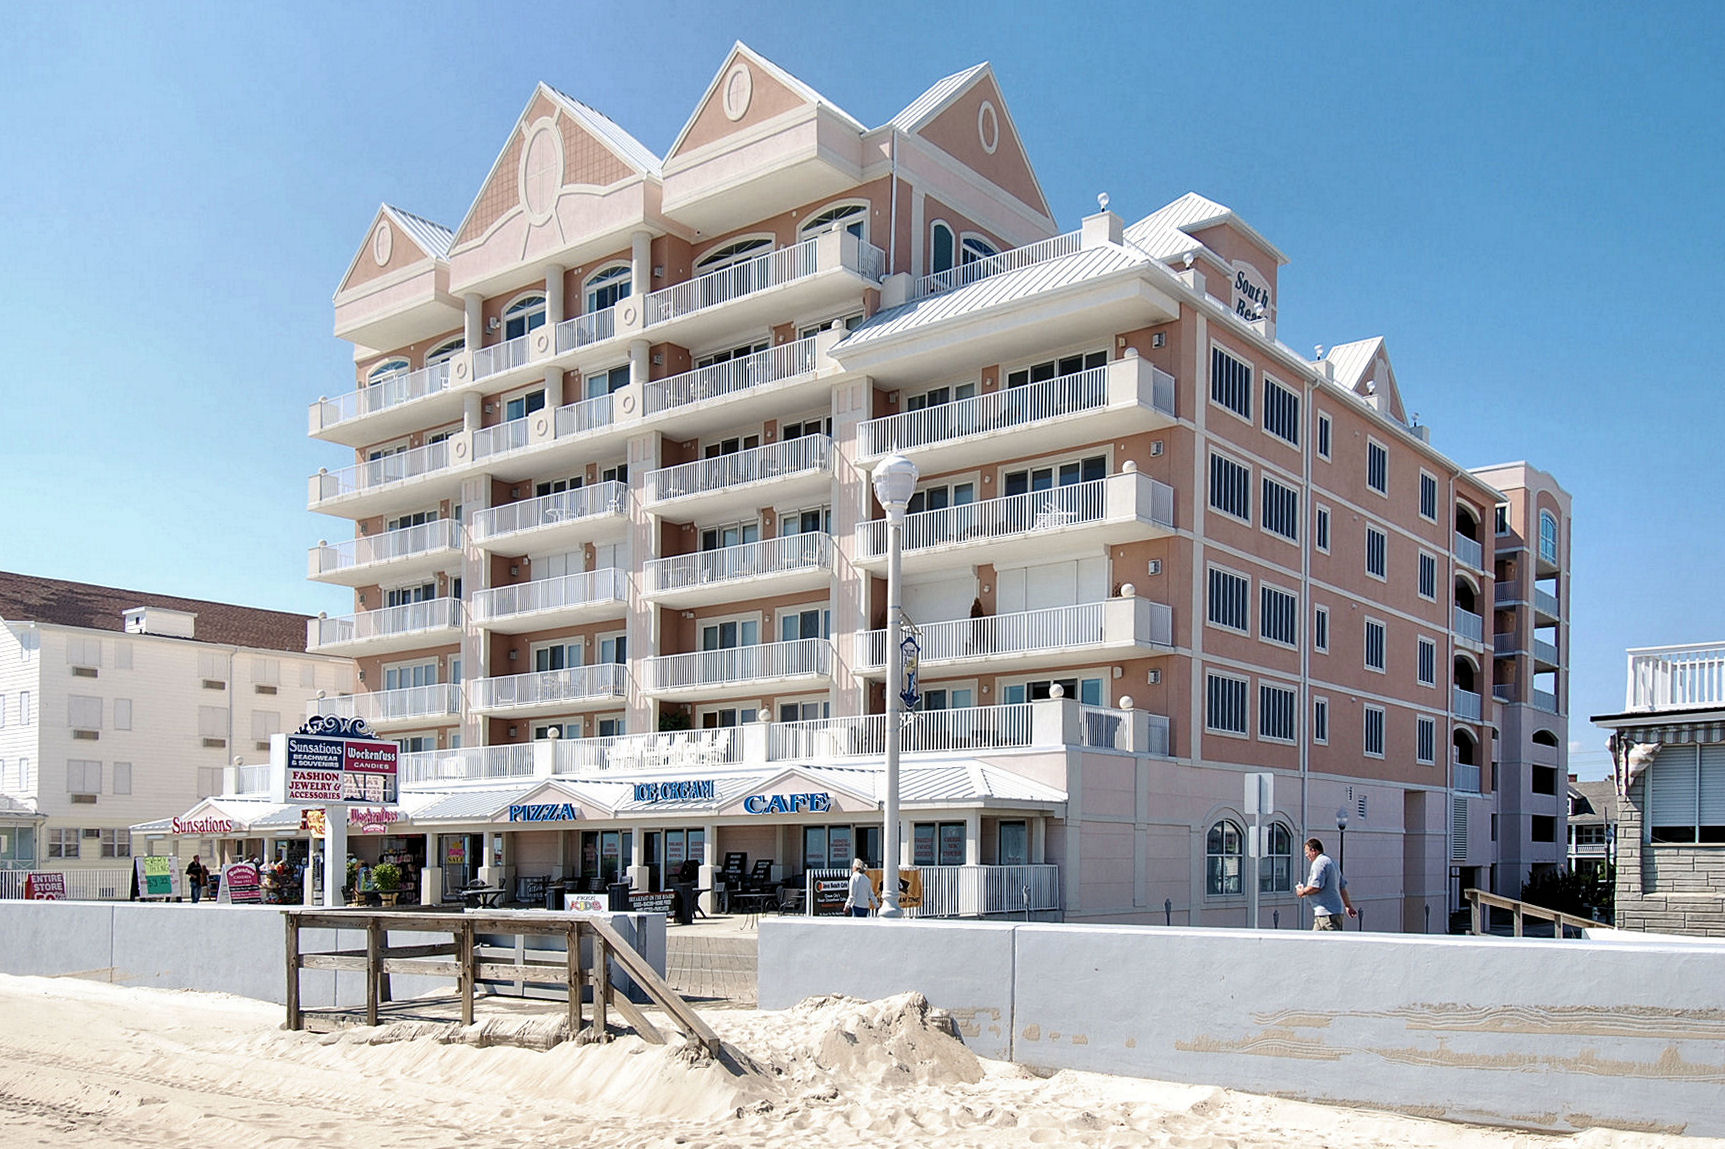 Ocean city real estate just listed by kevin and monica mcnamara 605